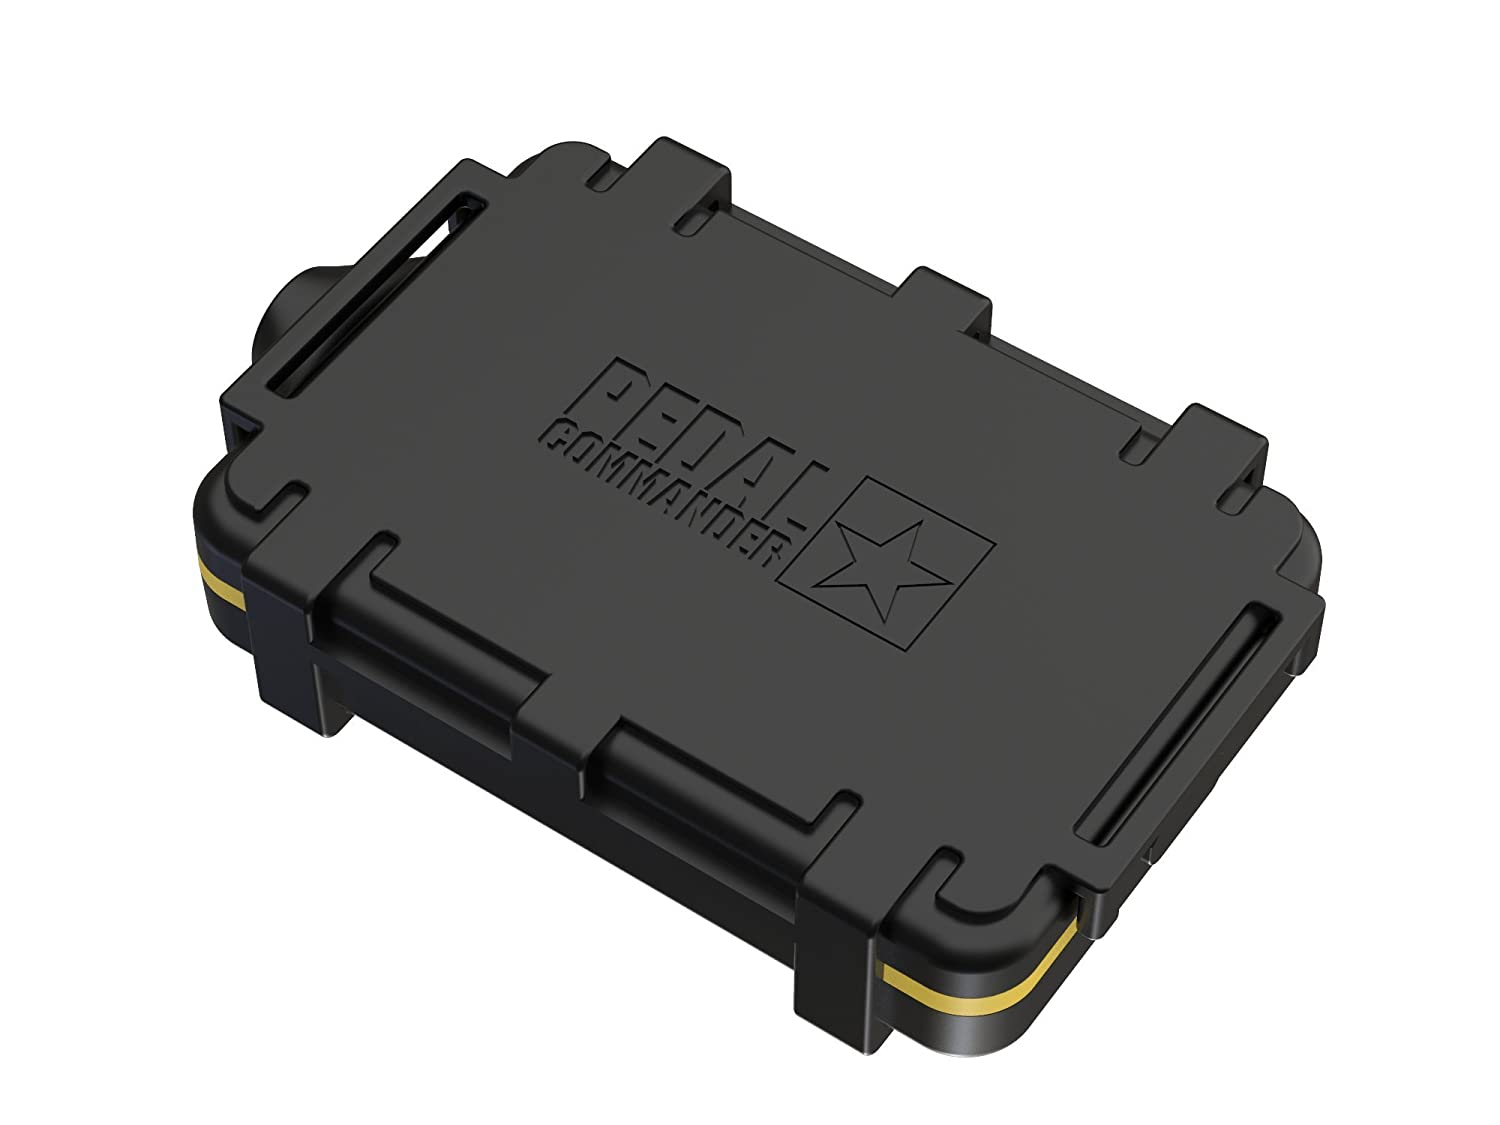 Pedal Commander Throttle Response Controller Pc65 For Gm Fuel Filter Replacement Models 2007 And Newer Get Increased Performance Or Save Up To 20 Available